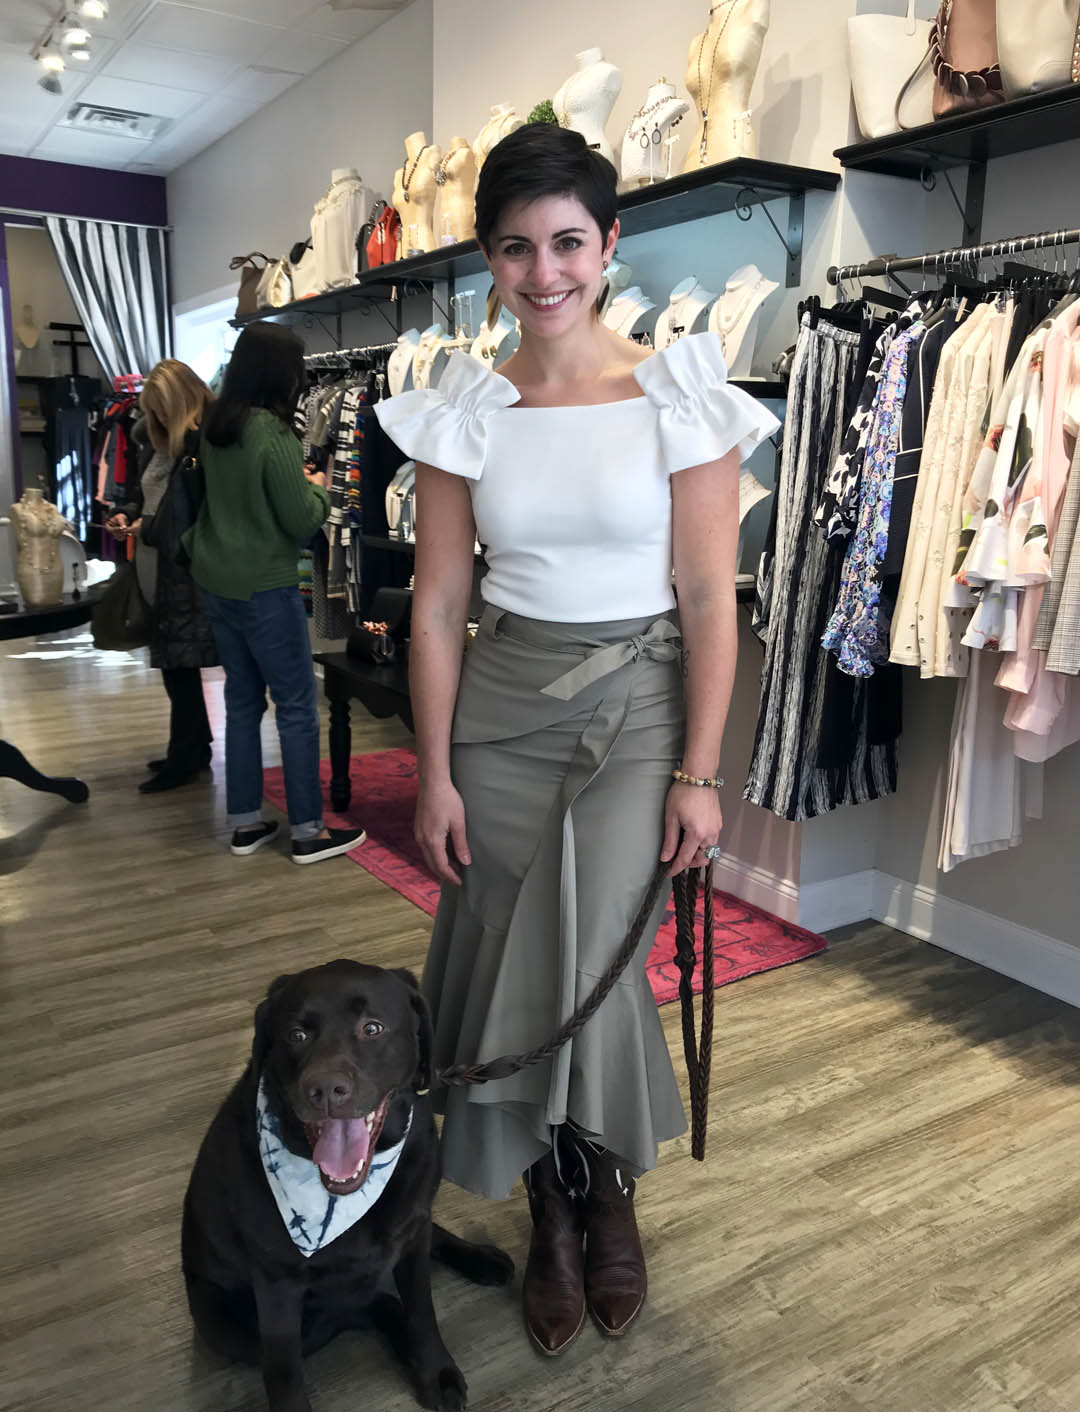 70 Of The Best Dog Friendly Shops Across America ⋆ Wear Wag Repeat